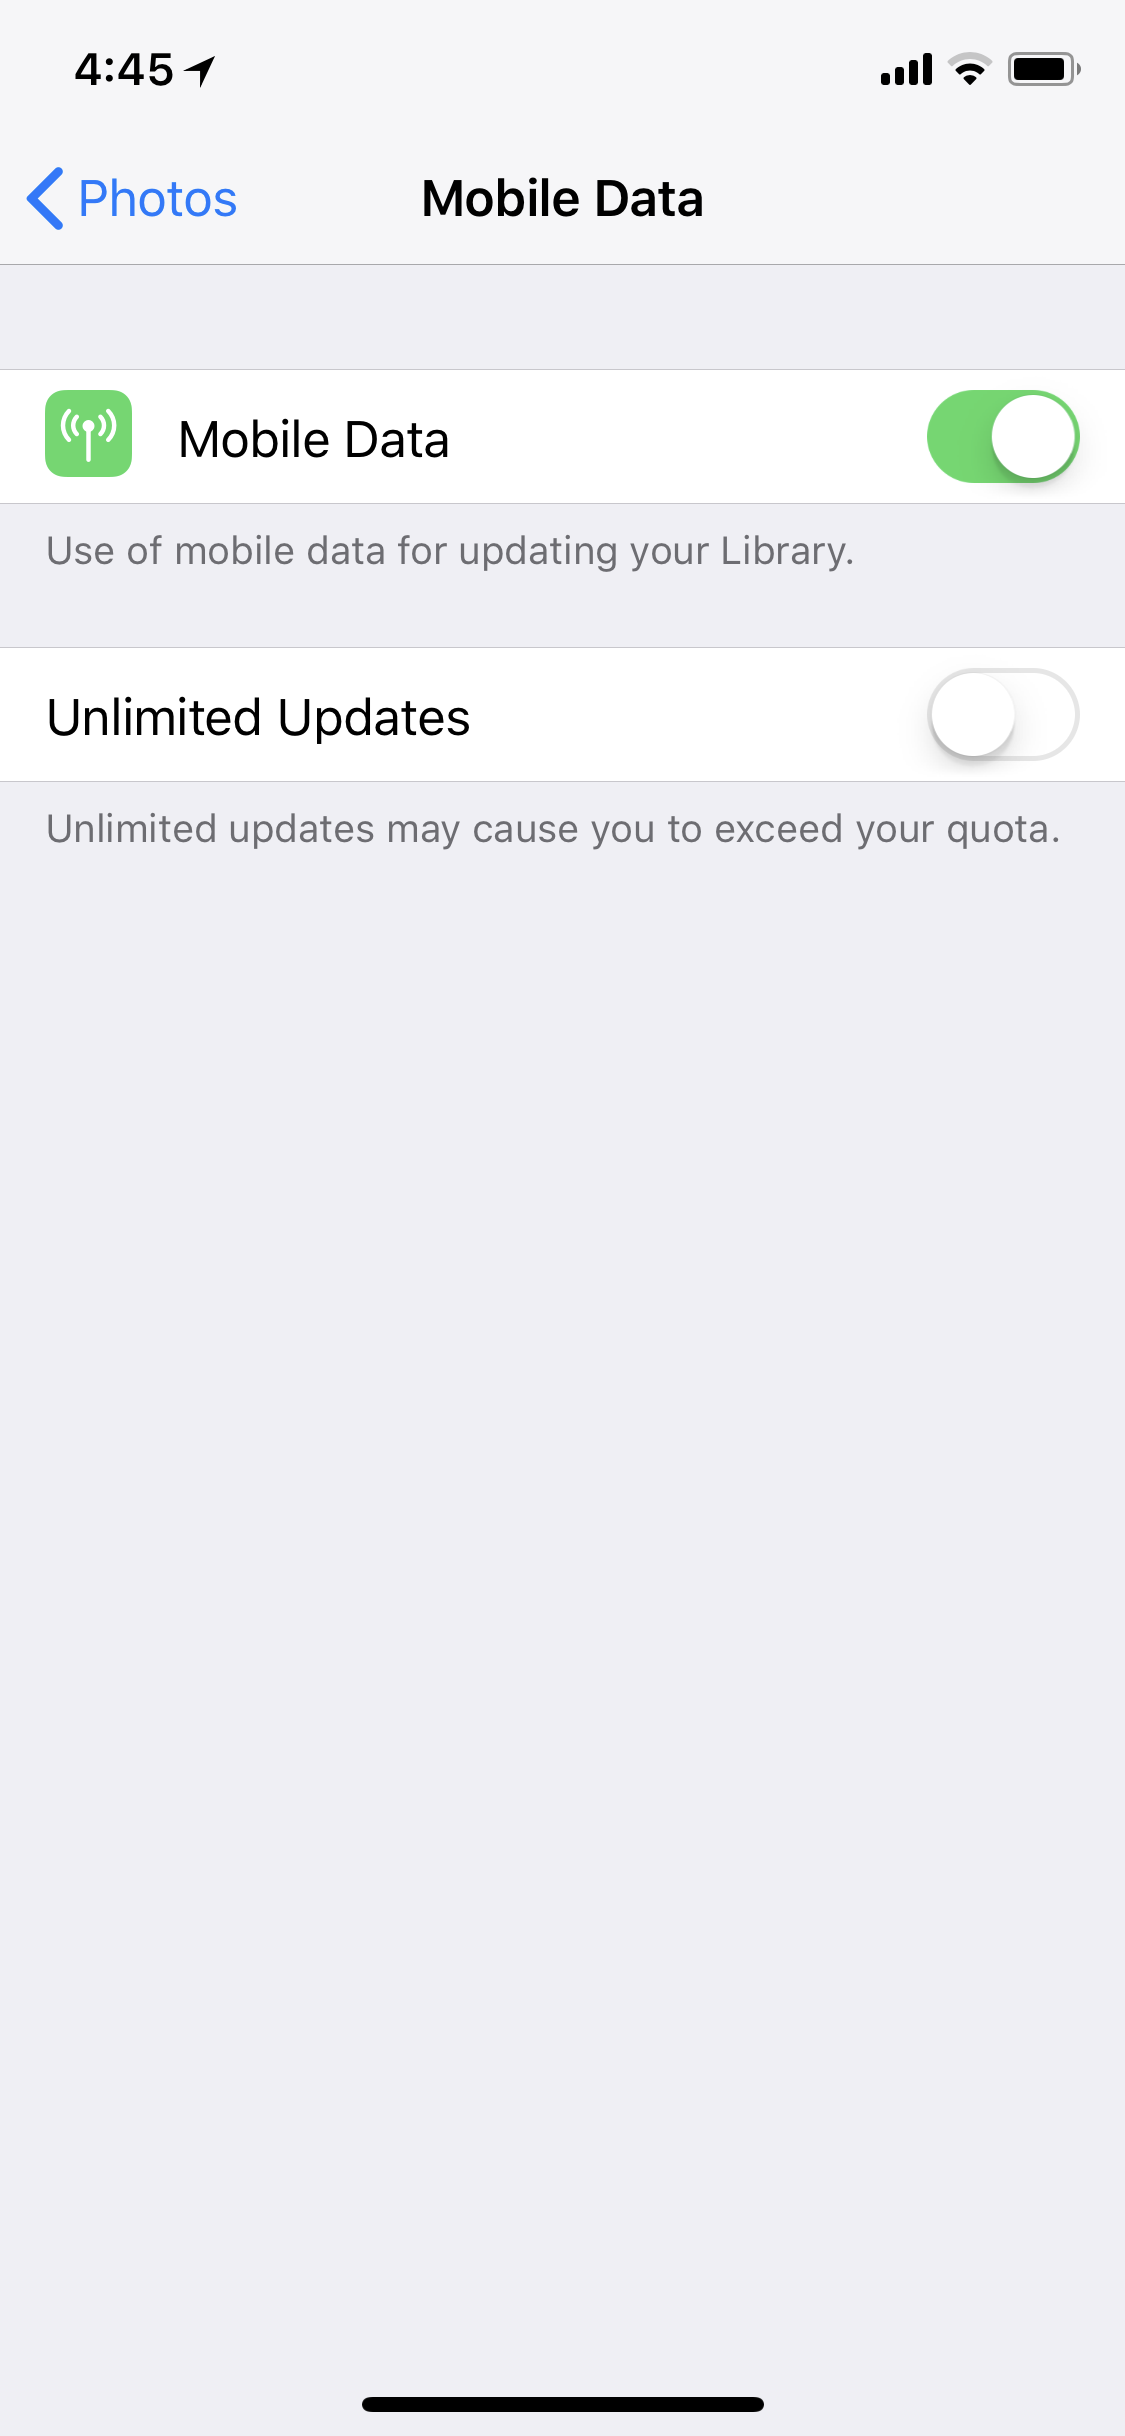 Wondering what not-unlimited updatesmeans.